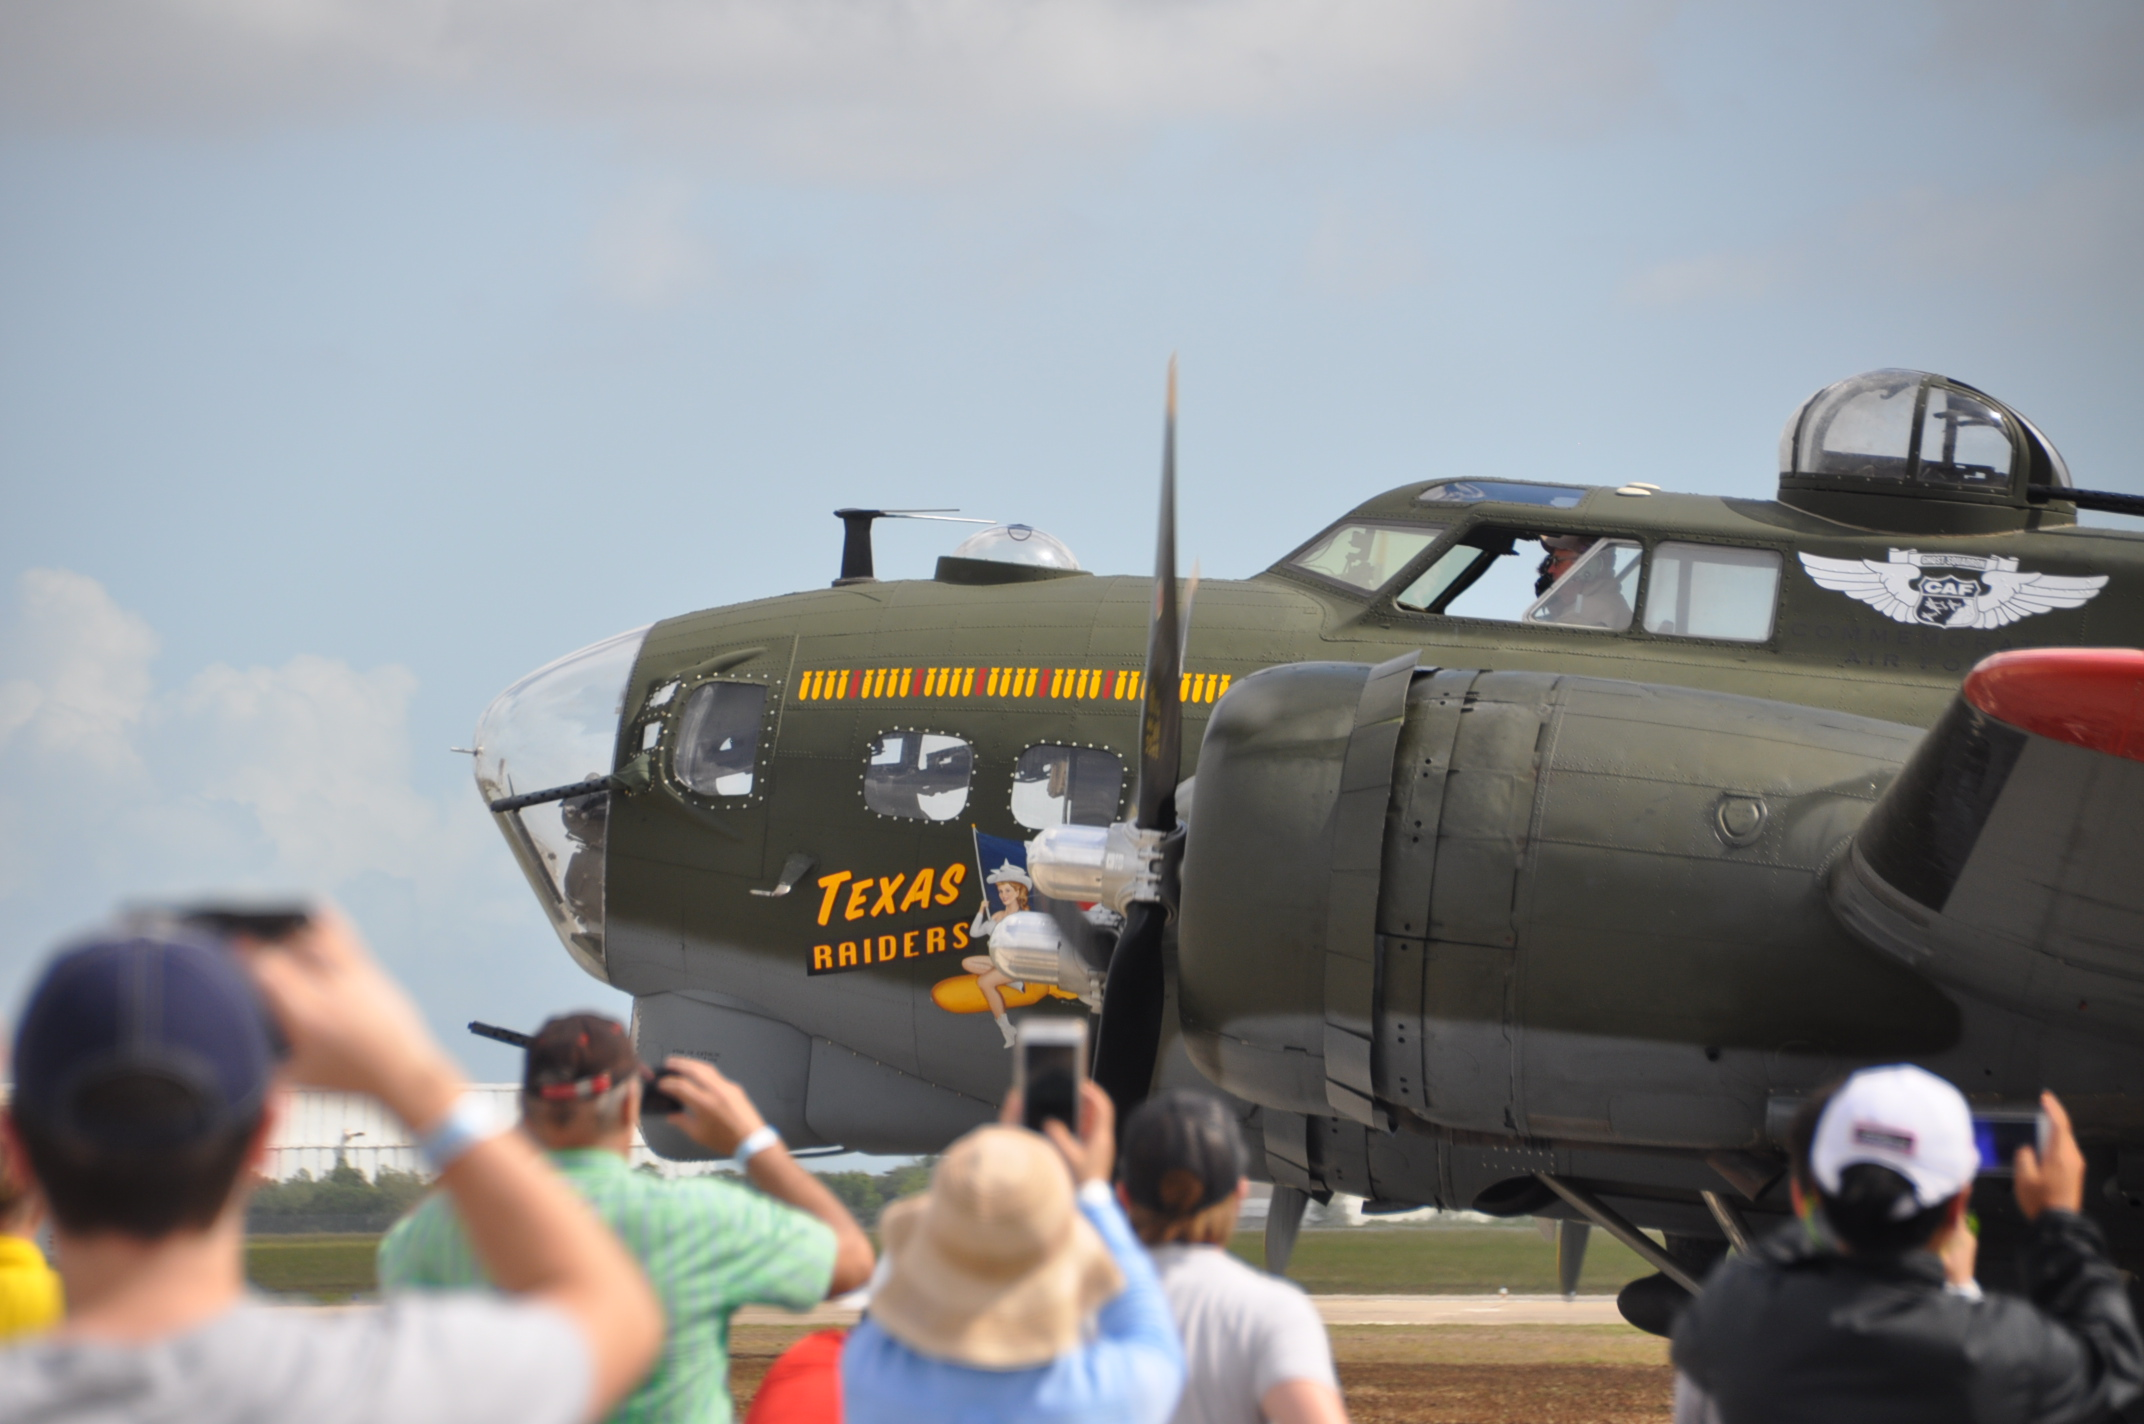 "<div class=""meta image-caption""><div class=""origin-logo origin-image ktrk""><span>KTRK</span></div><span class=""caption-text"">Decades of history on display and in flight at the Wings Over Houston Air Show at Ellington Field, October 21-22-, 2017.</span></div>"